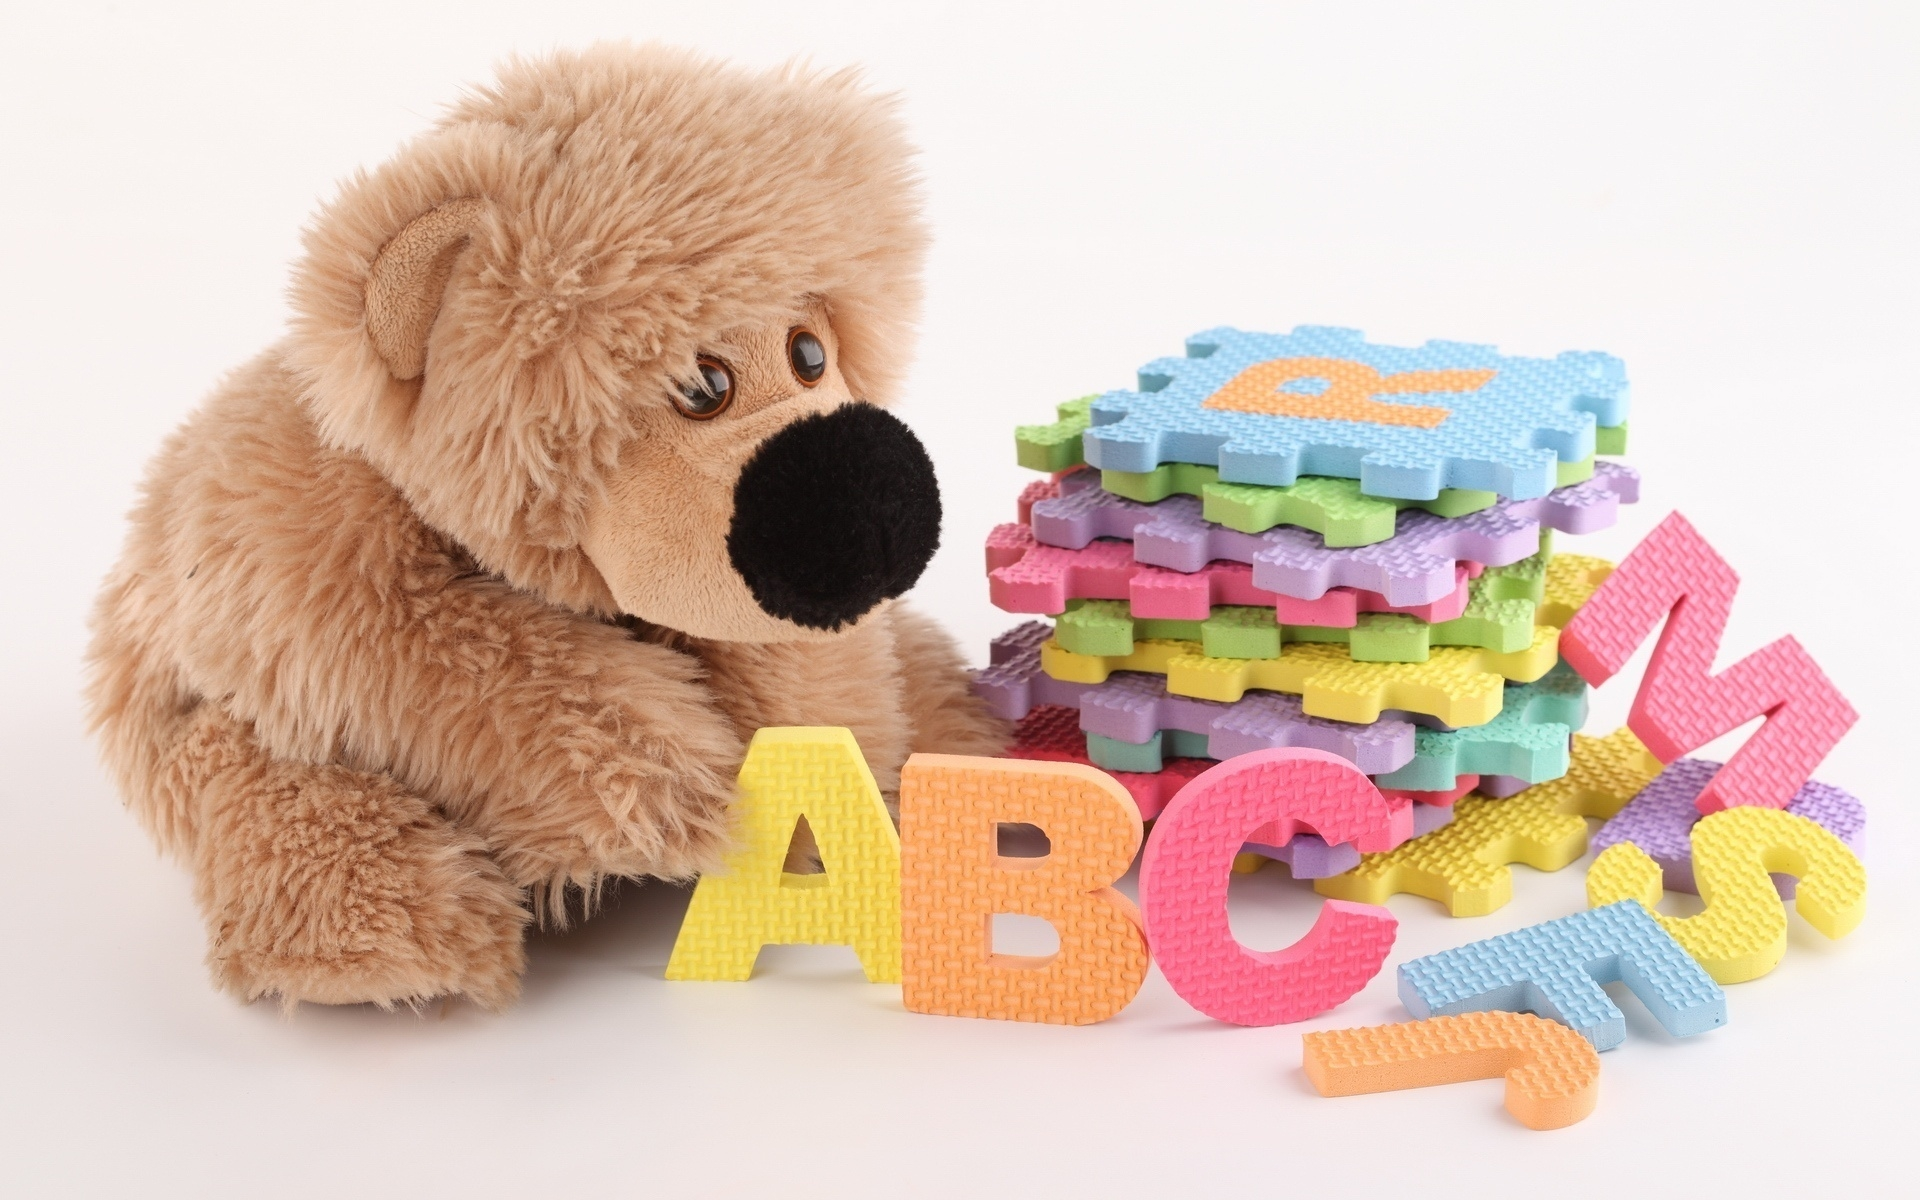 1920x1200 Wallpaper toys, letters, plush, colorful, development